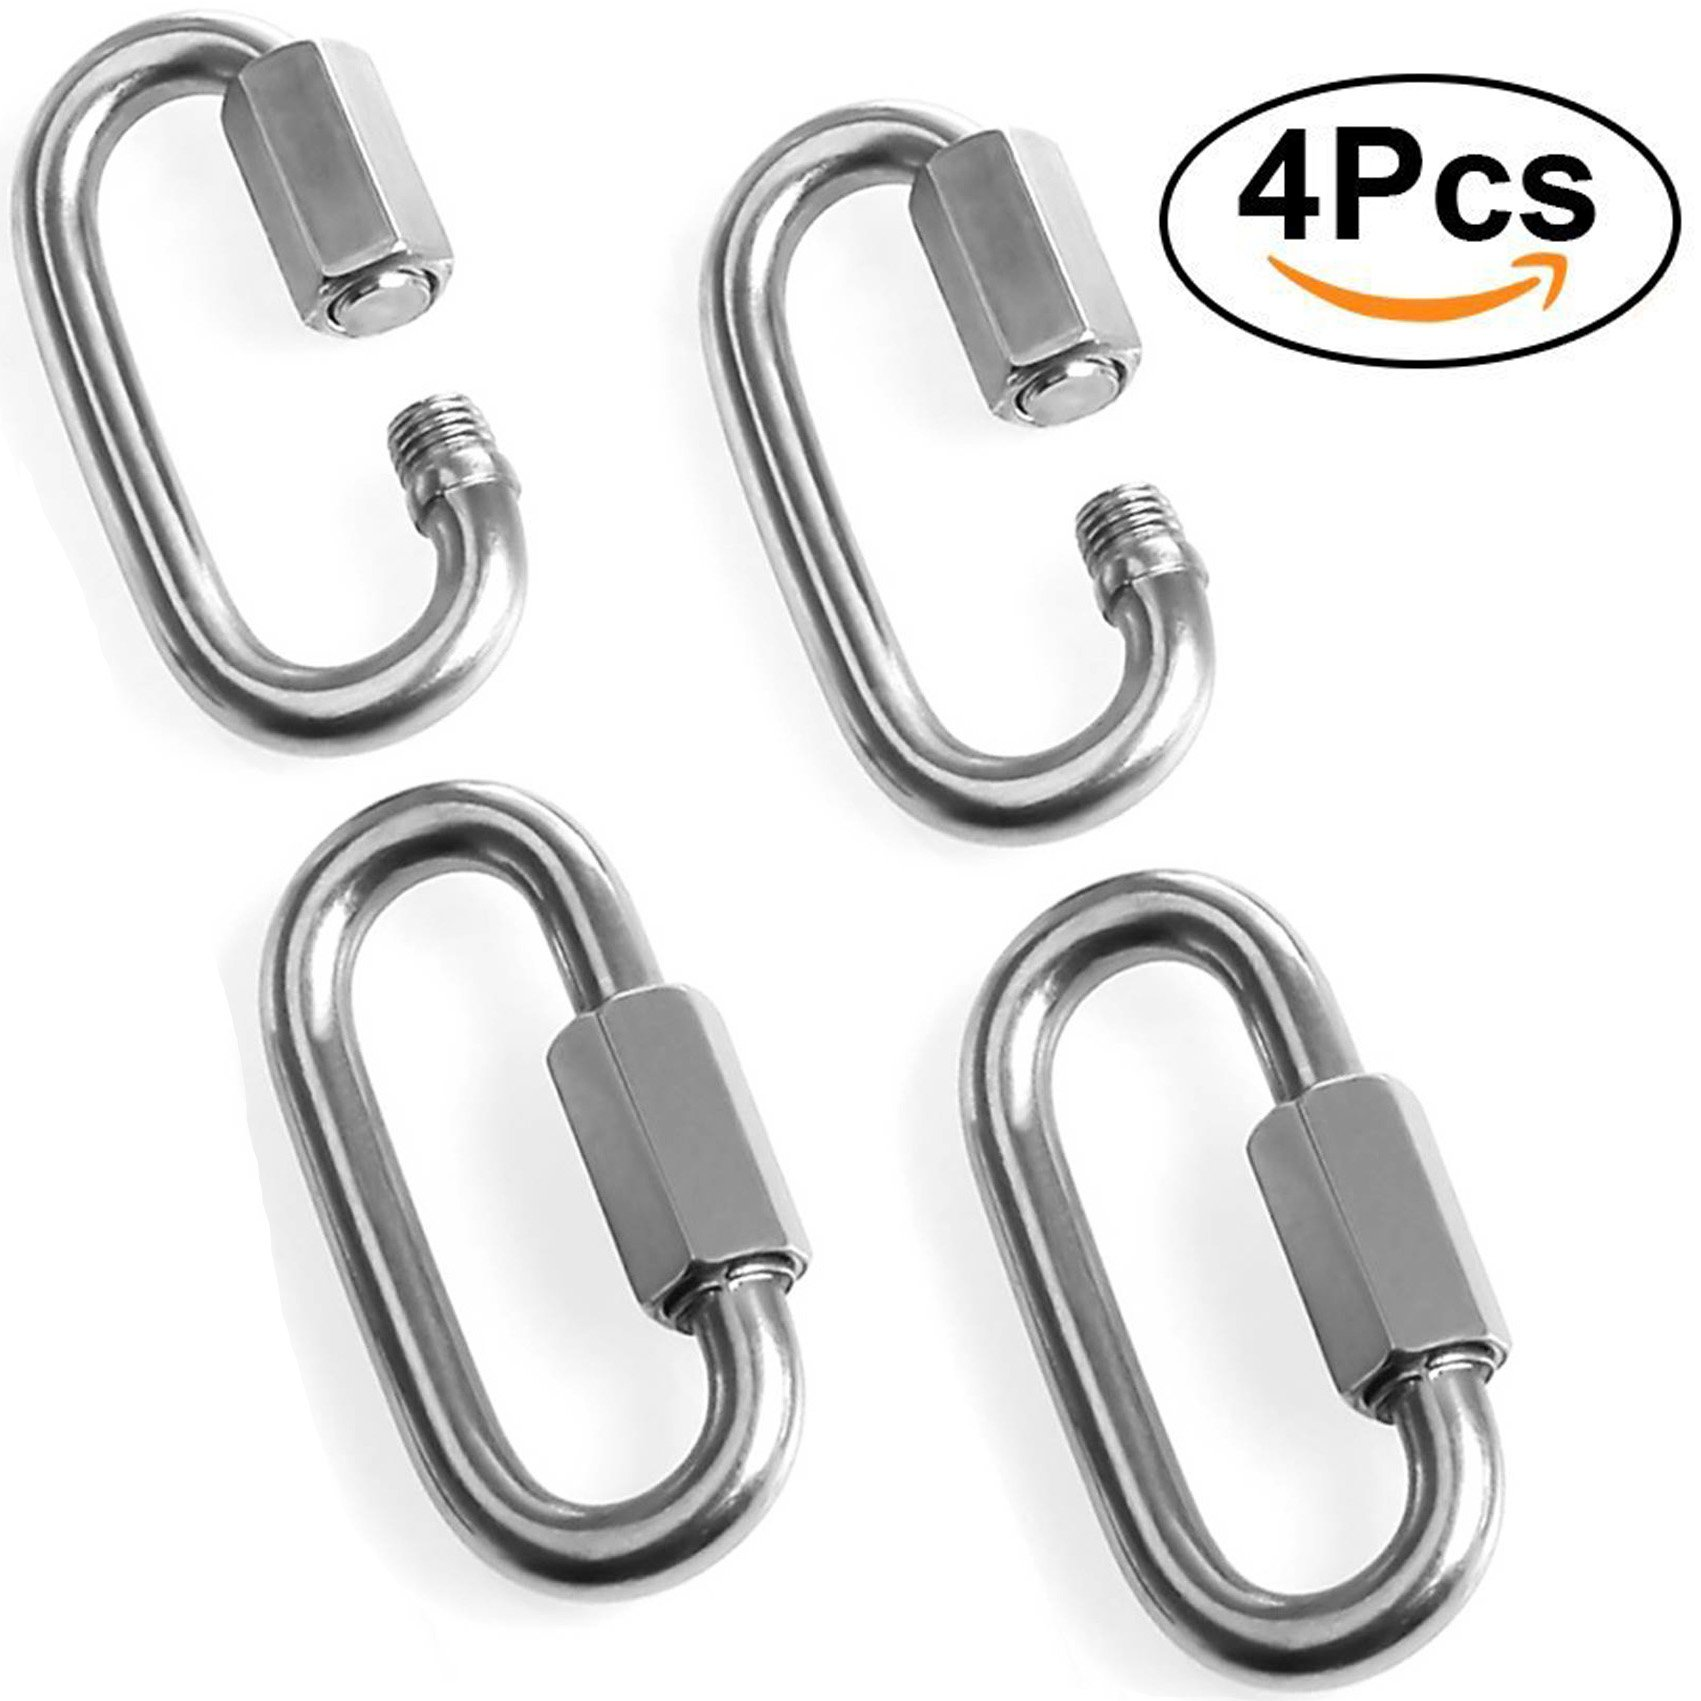 Acrux7 Heavy Duty Locking Carabiner Clip for Rock Climbing/4 Pack Stainless Steel Carabiners, Hexagon Stud Connector & Deep Thread for Heavy Duty Climbing Hook, Strongly Stamping